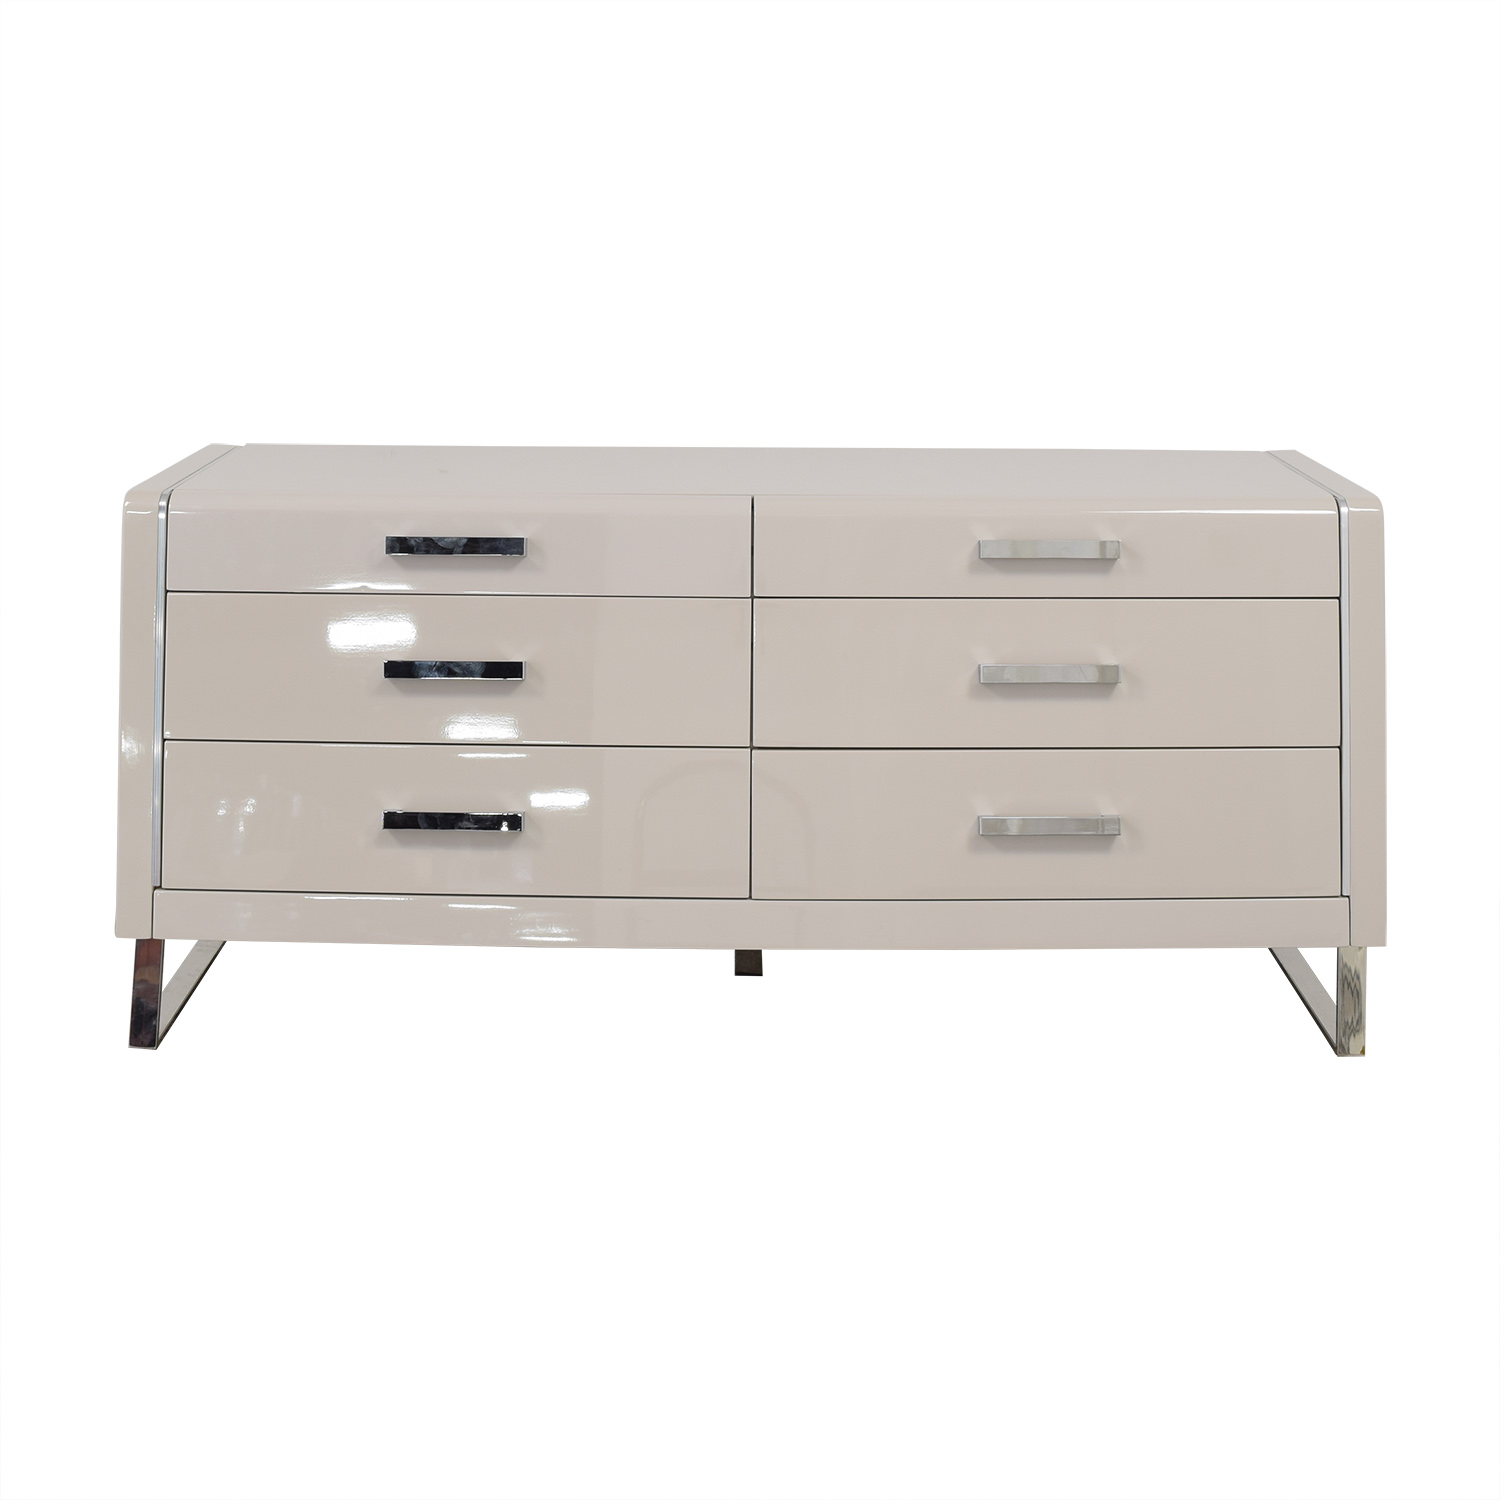 Wayfair Wayfair Bahamas Six Drawer Double Dresser coupon